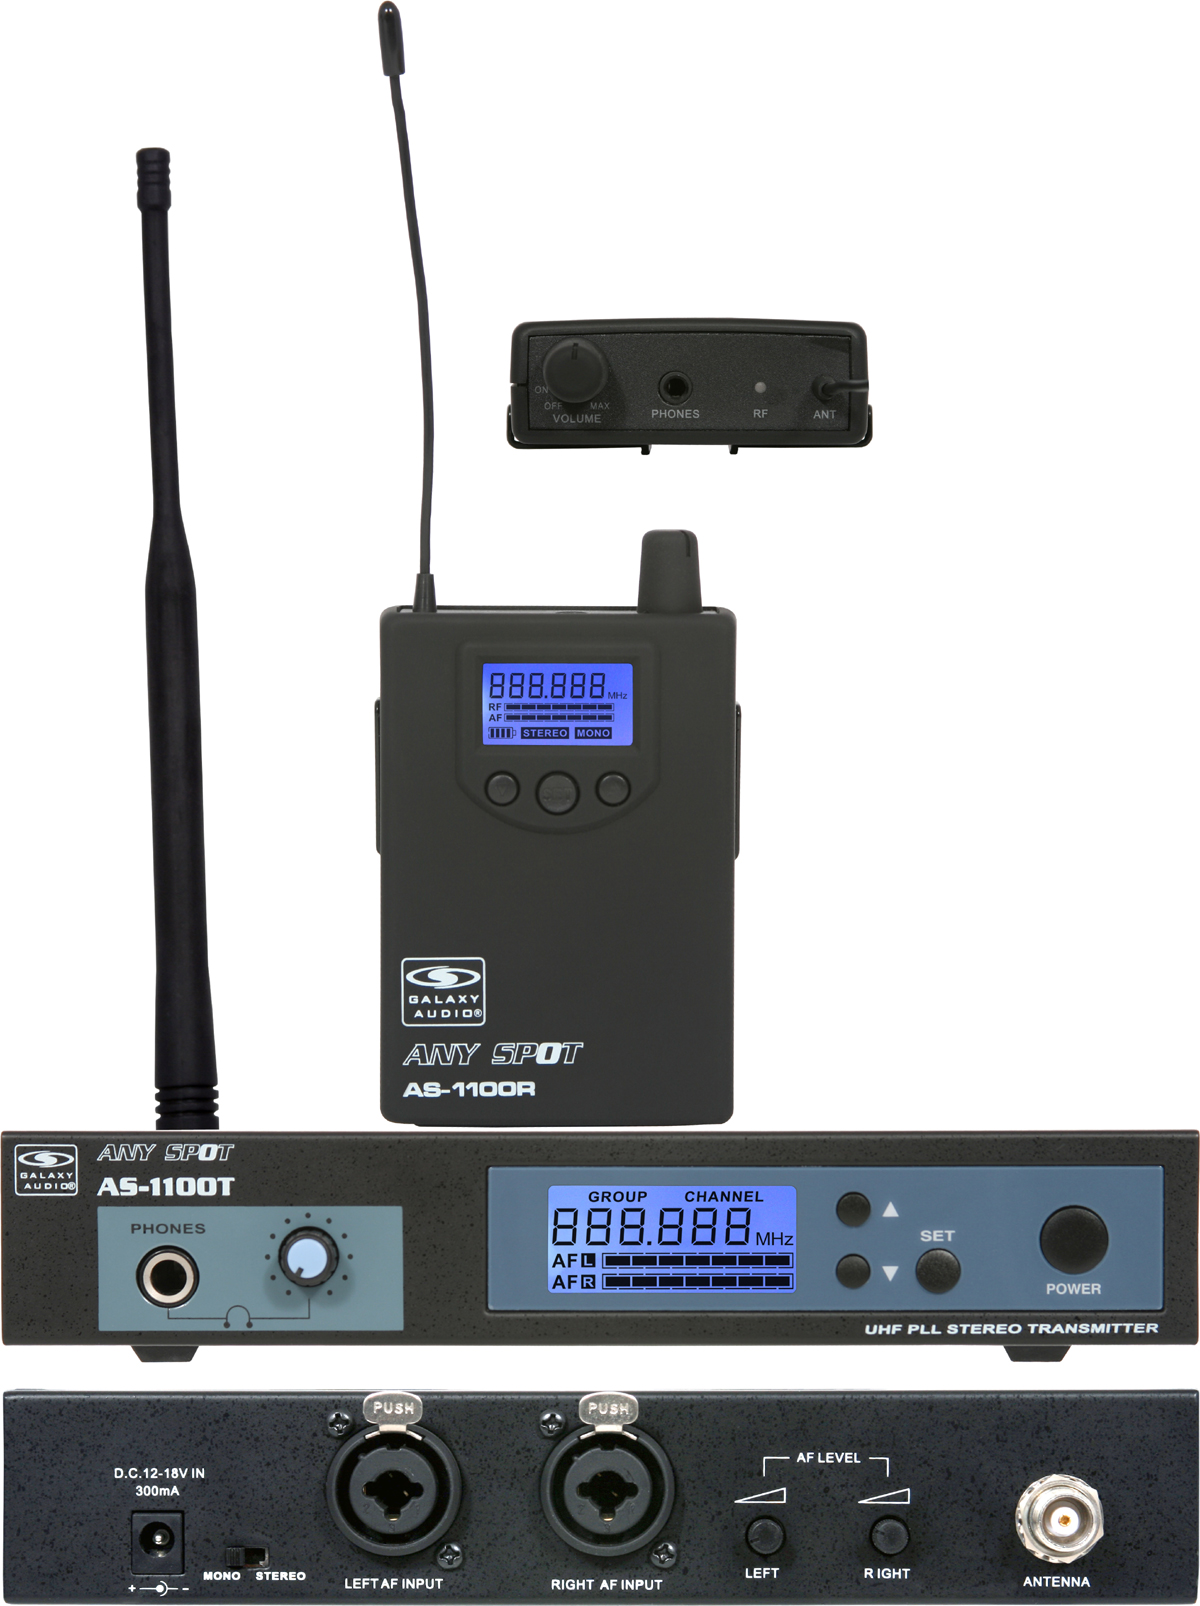 Galaxy Audio AS-1110 UHF Wireless AS-1100 with EB-10 Personal Monitor